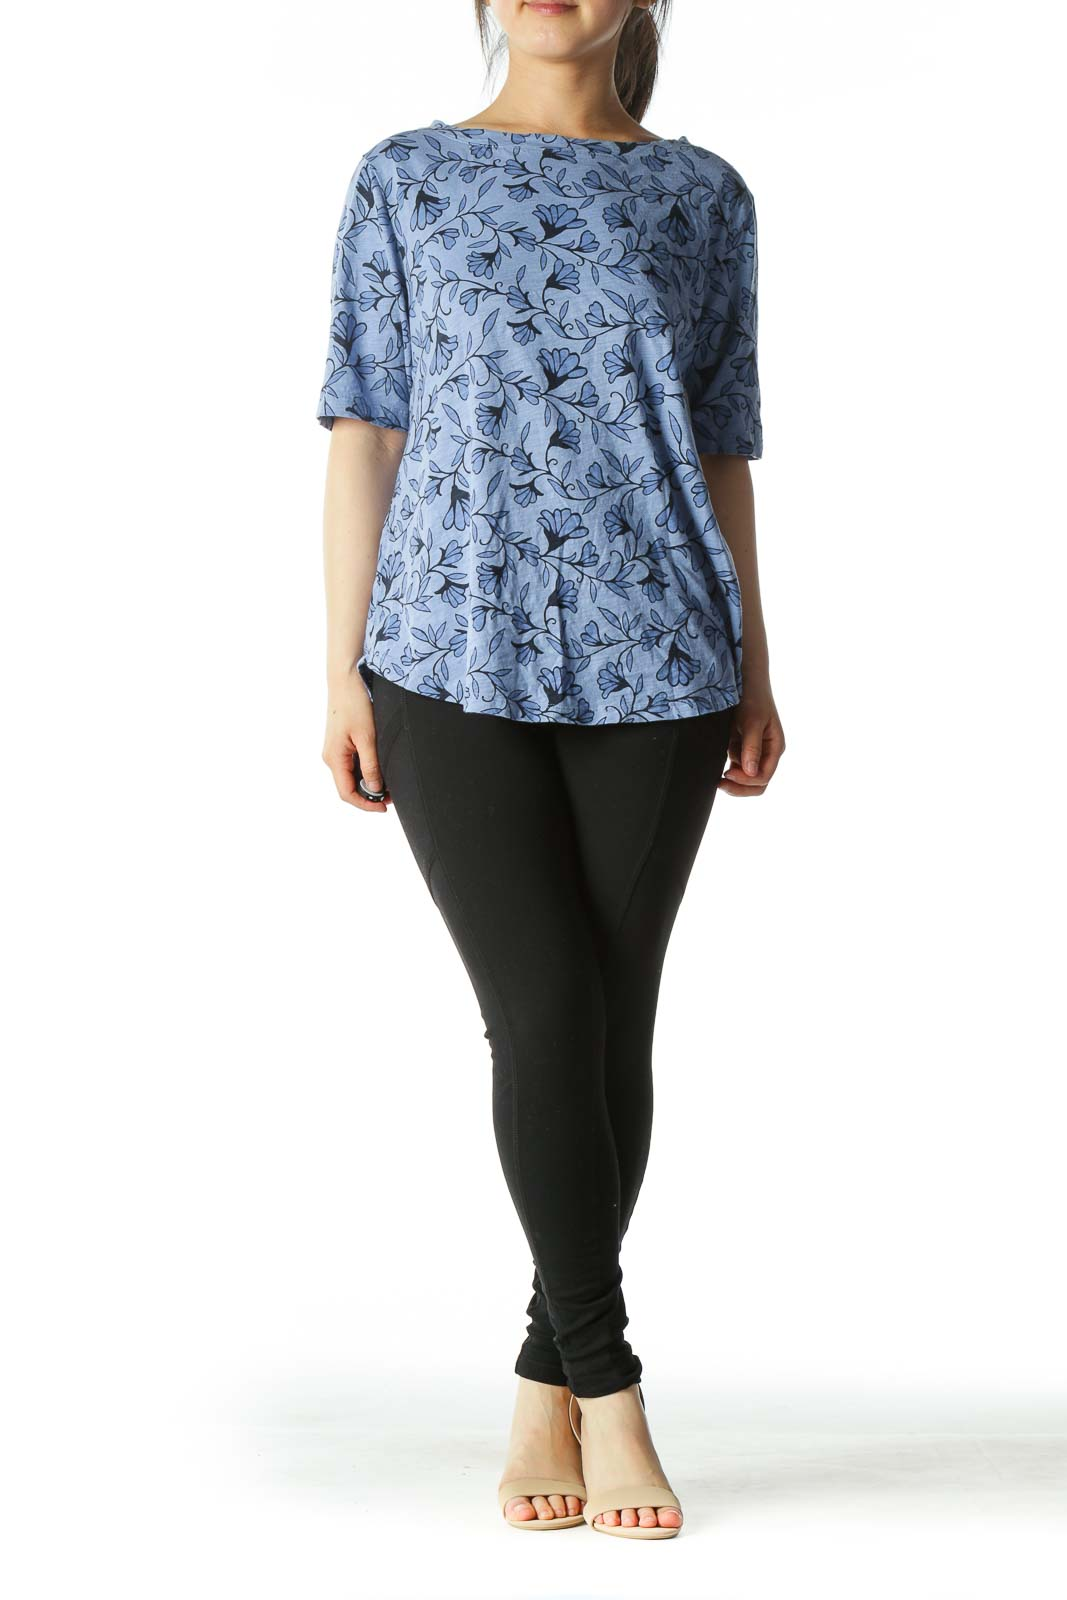 Blue Floral Design Crew-Neck T-Shirt